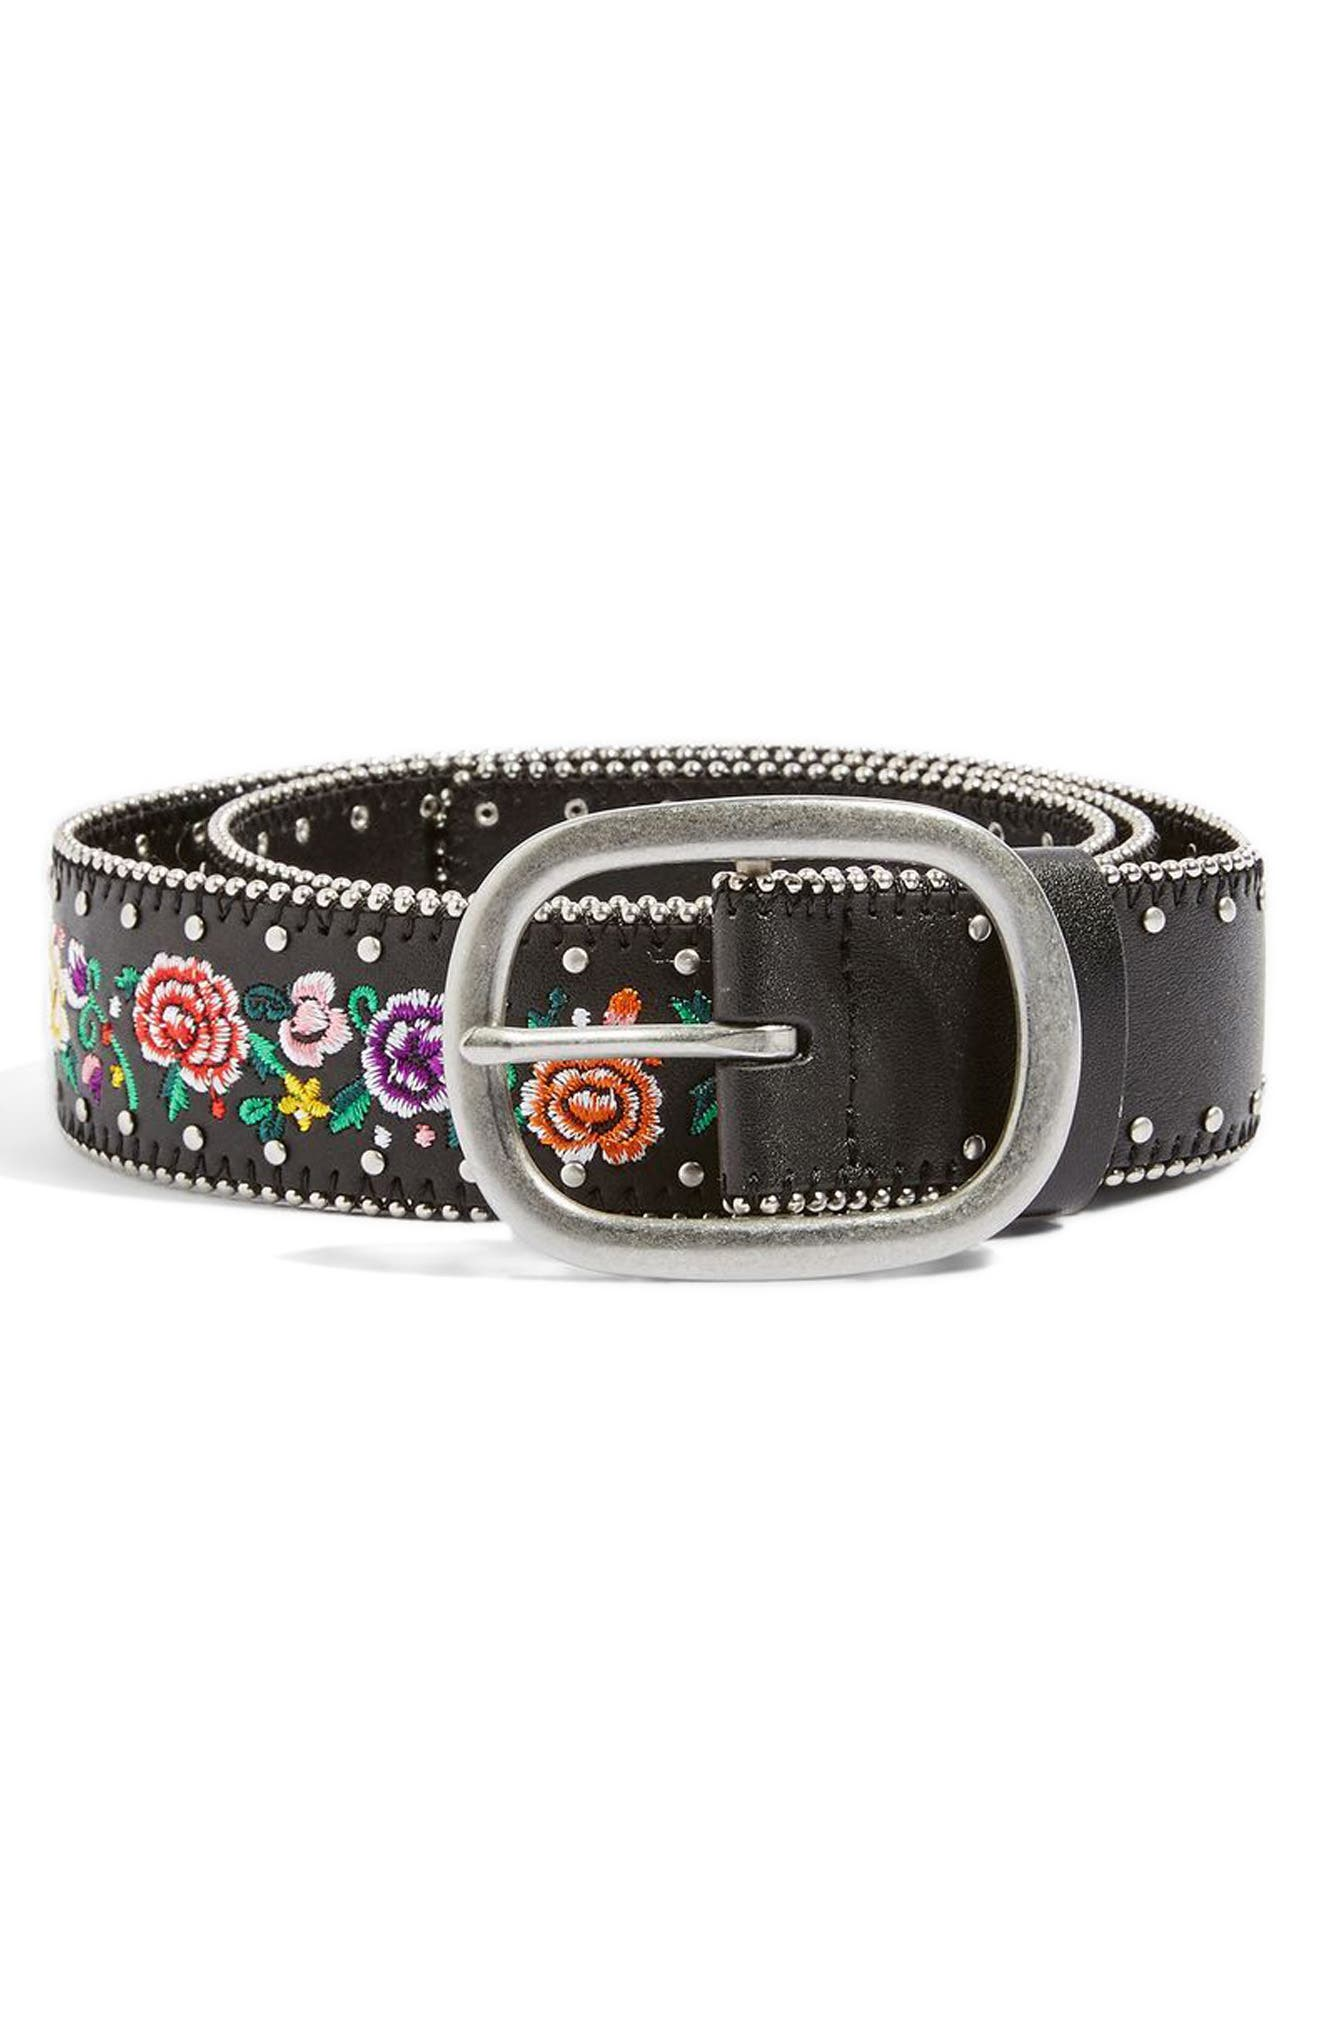 Alternate Image 1 Selected - Topshop Chain Trim Floral Embroidered Belt